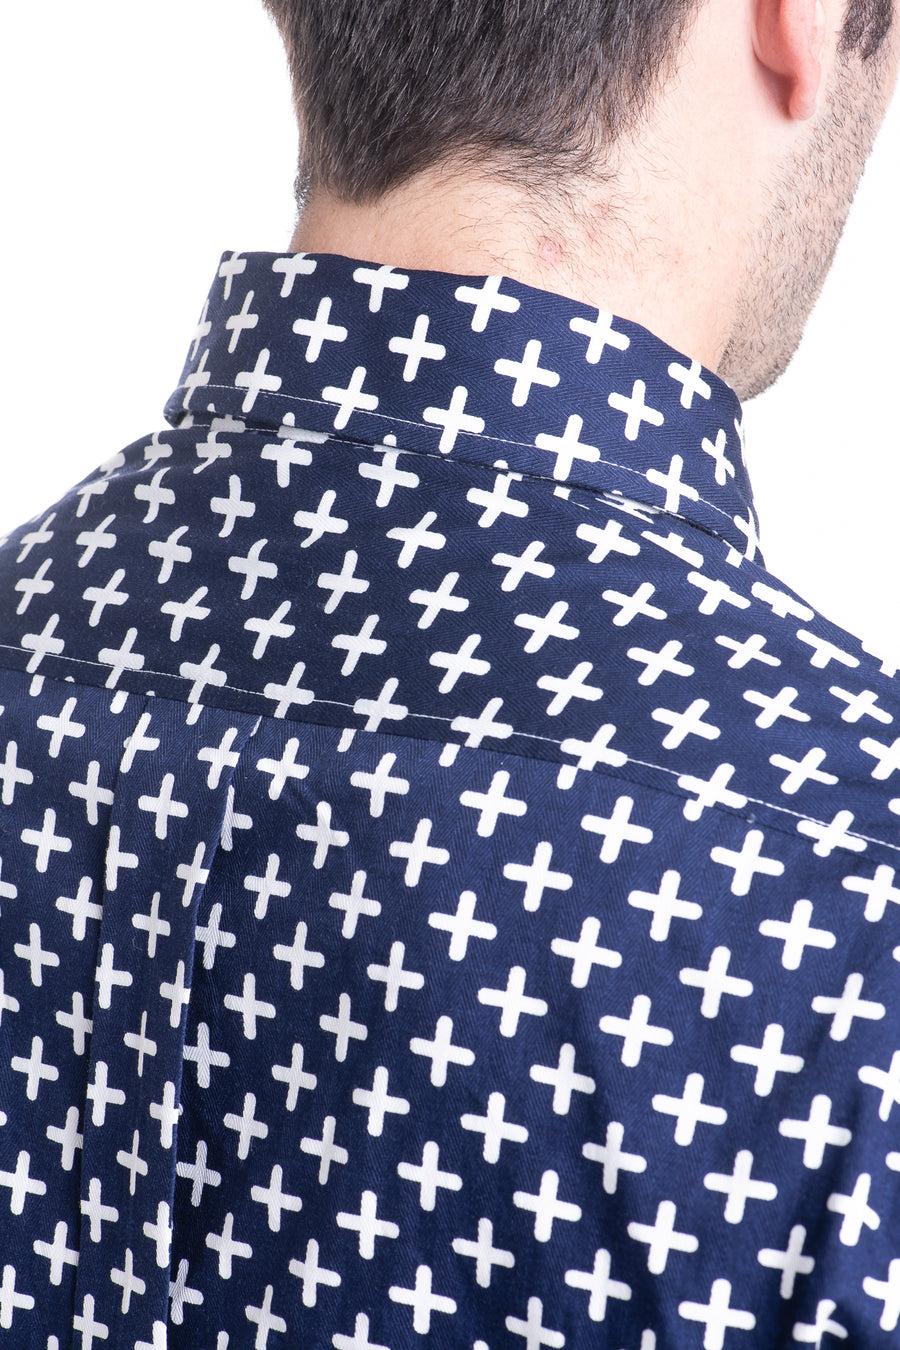 White Cross Concealed Shirt